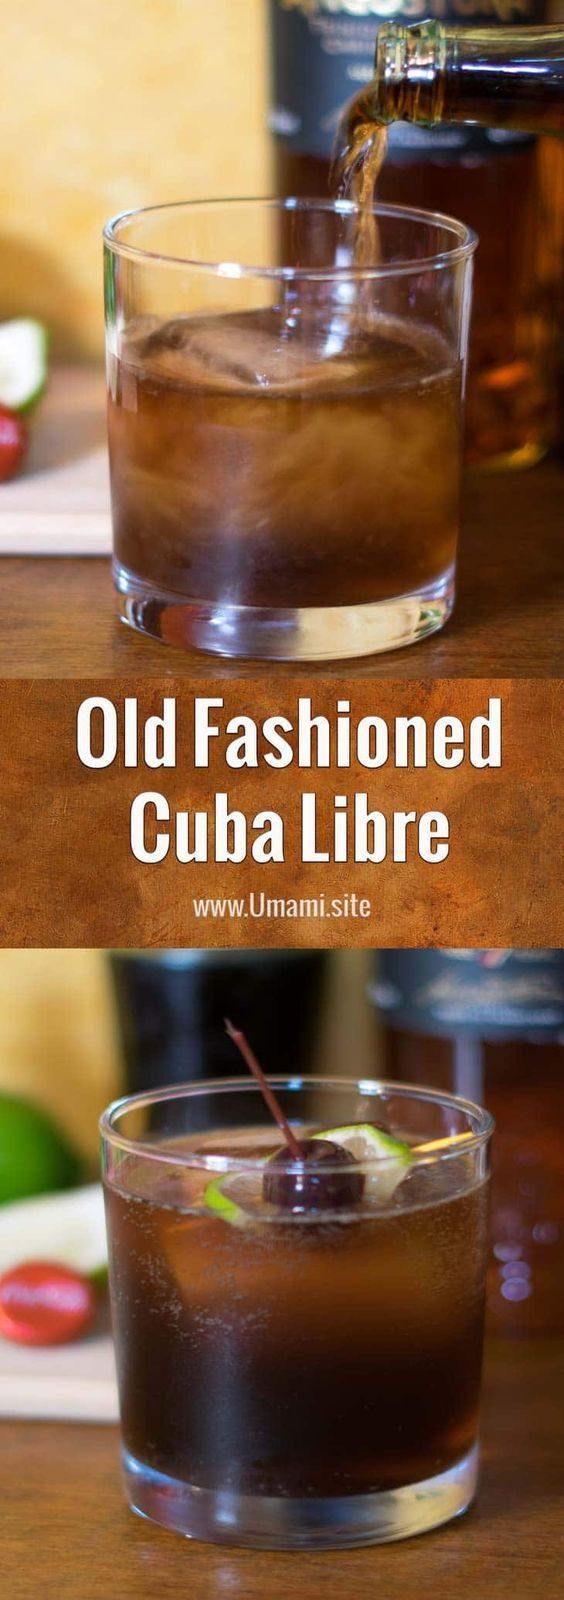 The Old Fashioned Cuba Libre is the result of a tawdry little affair between a classic Cuba Libre and a much younger mid-century Old Fashioned. Like all good affairs, this one has some nice muddling, a little rum, and a touch of Mexican Coke thrown in for good times. #cocktails #recipes #happyhour #rum